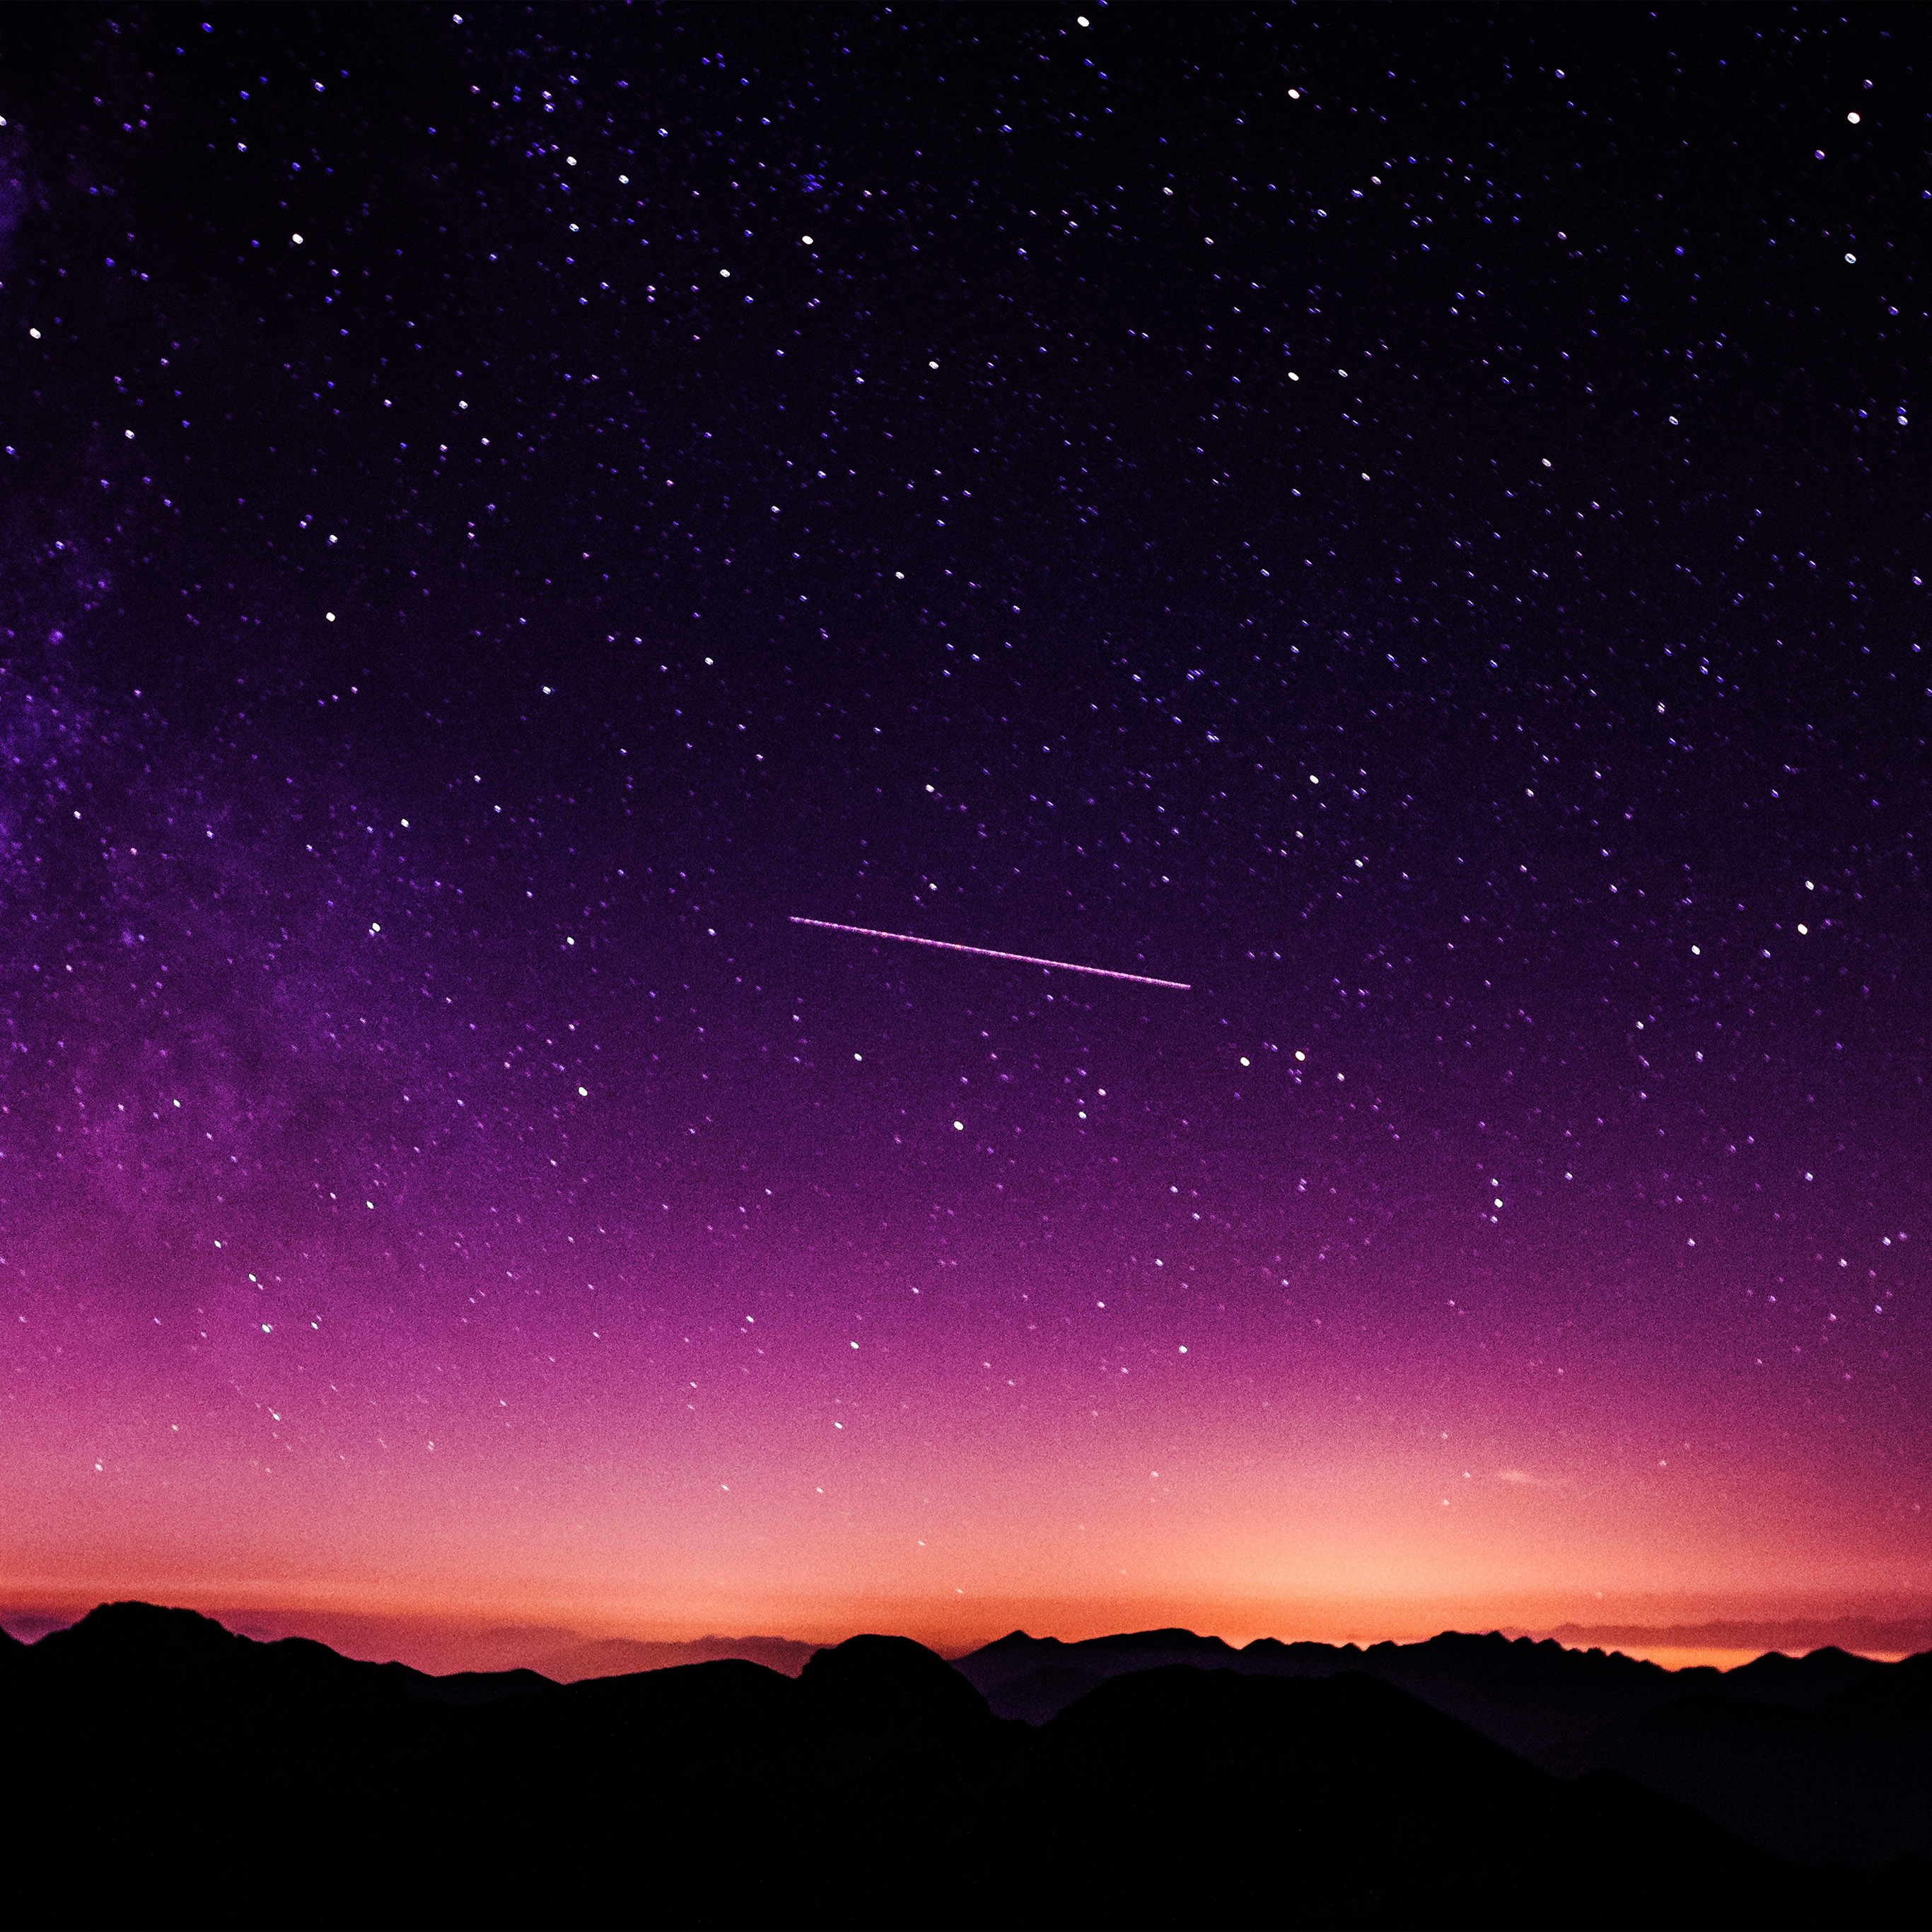 ne63 star galaxy night sky mountain purple red nature space